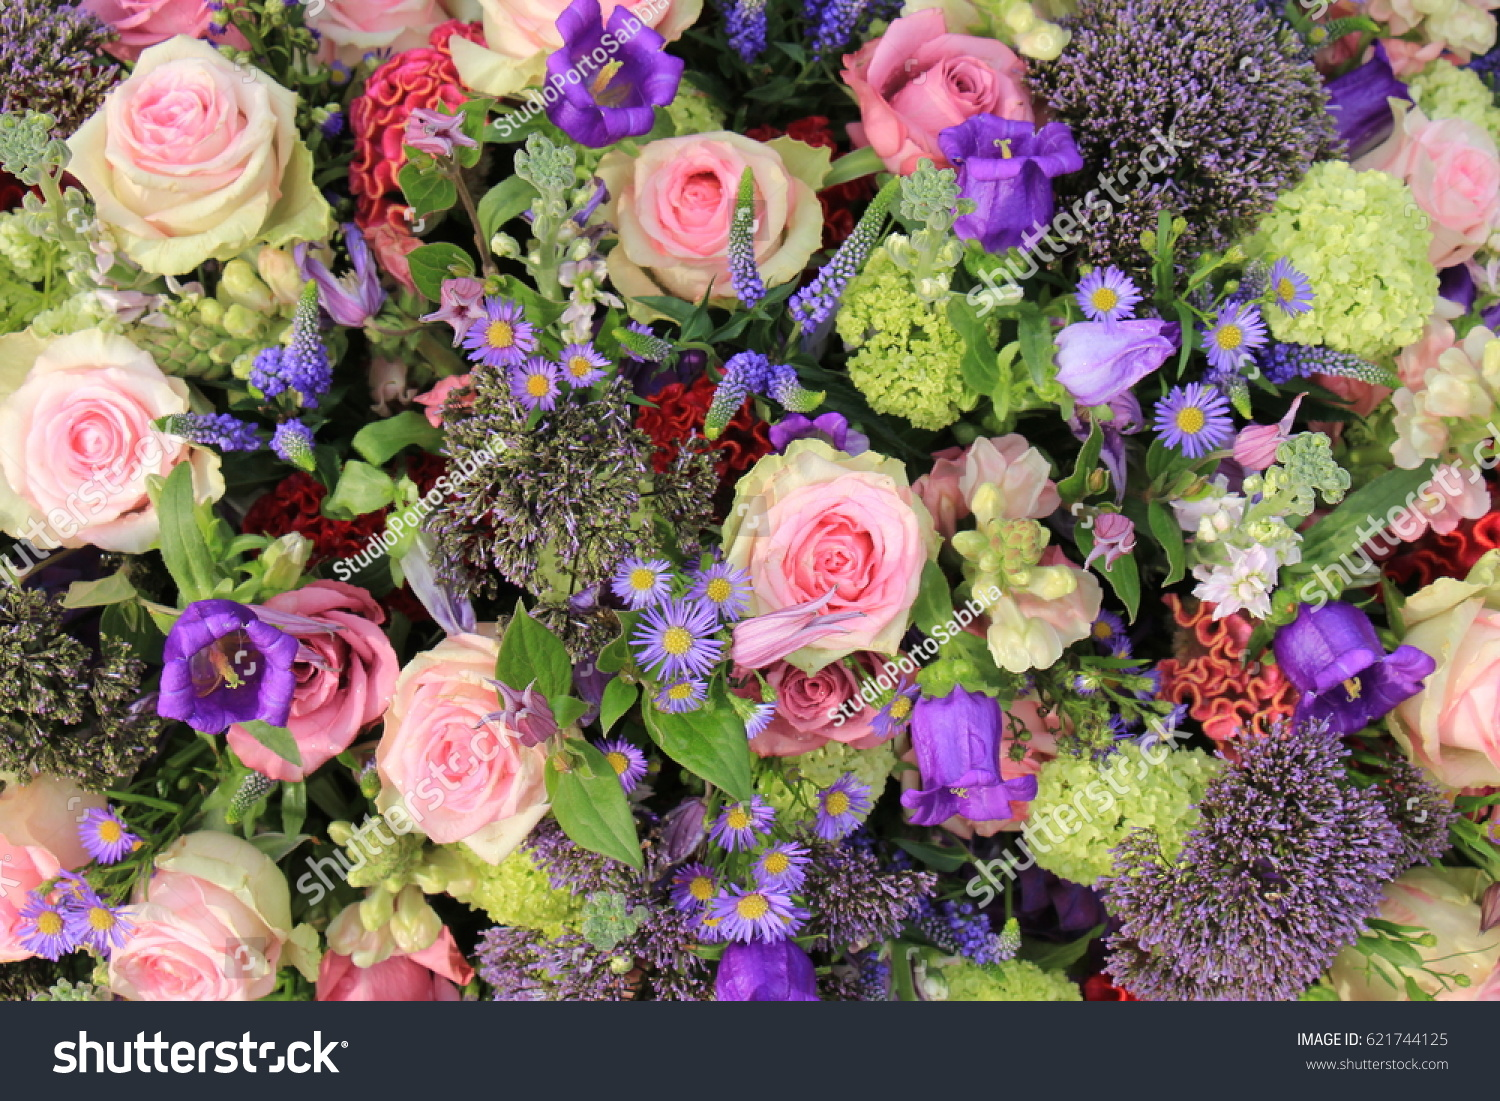 Mixed Flower Arrangement Wedding Flowers Pink Stock Photo Safe To